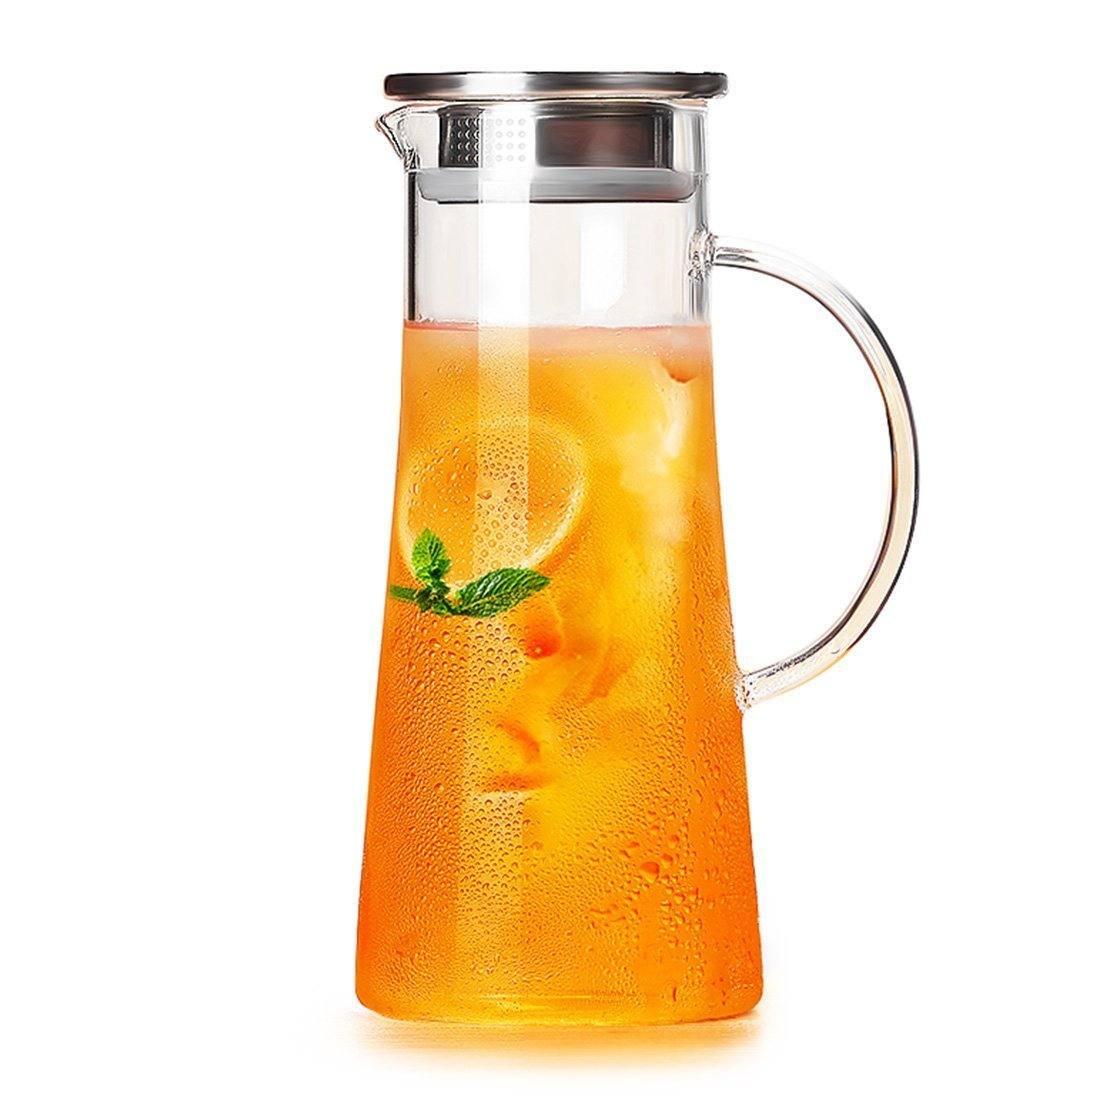 CENSUN 1.5 Liter/52 OZ Borosilicate Glass Pitcher Water Jug with Stainless Steel Strainer Lid, Juice Iced Tea Beverage Hand Made Carafe